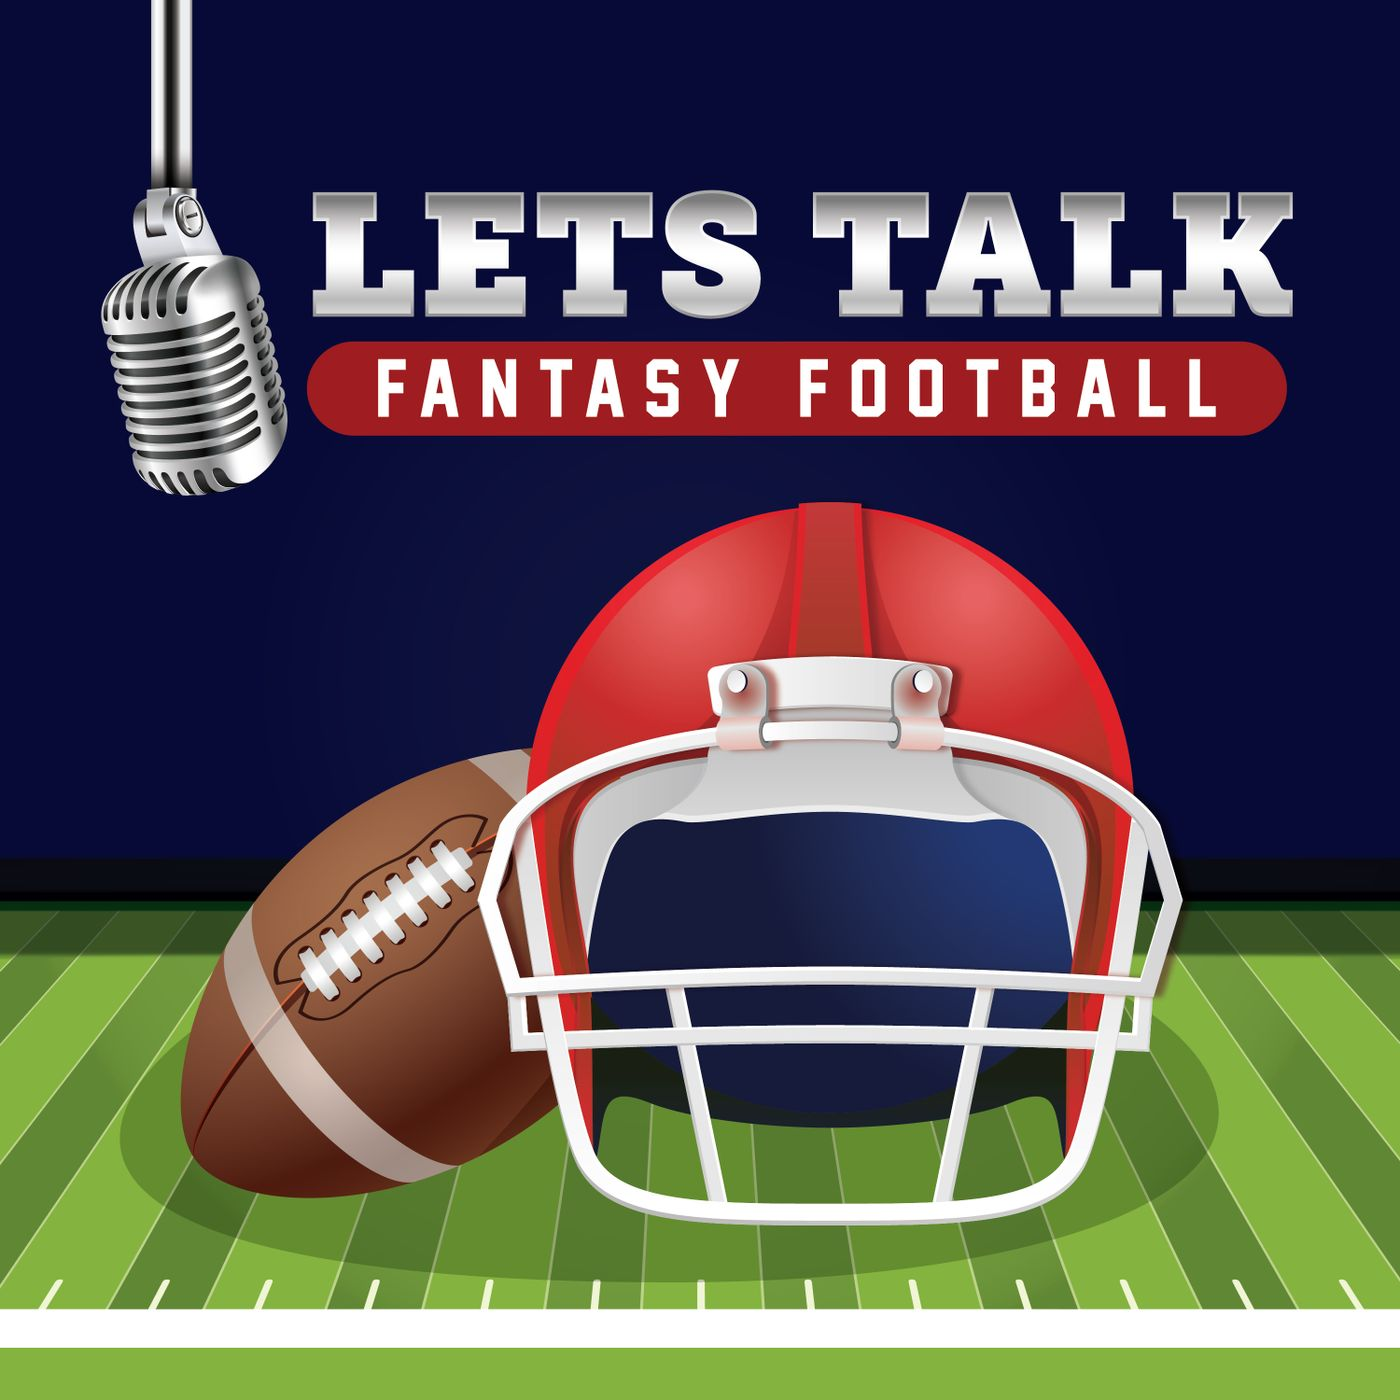 Week 7 Fantasy Football Preview - Episode 327